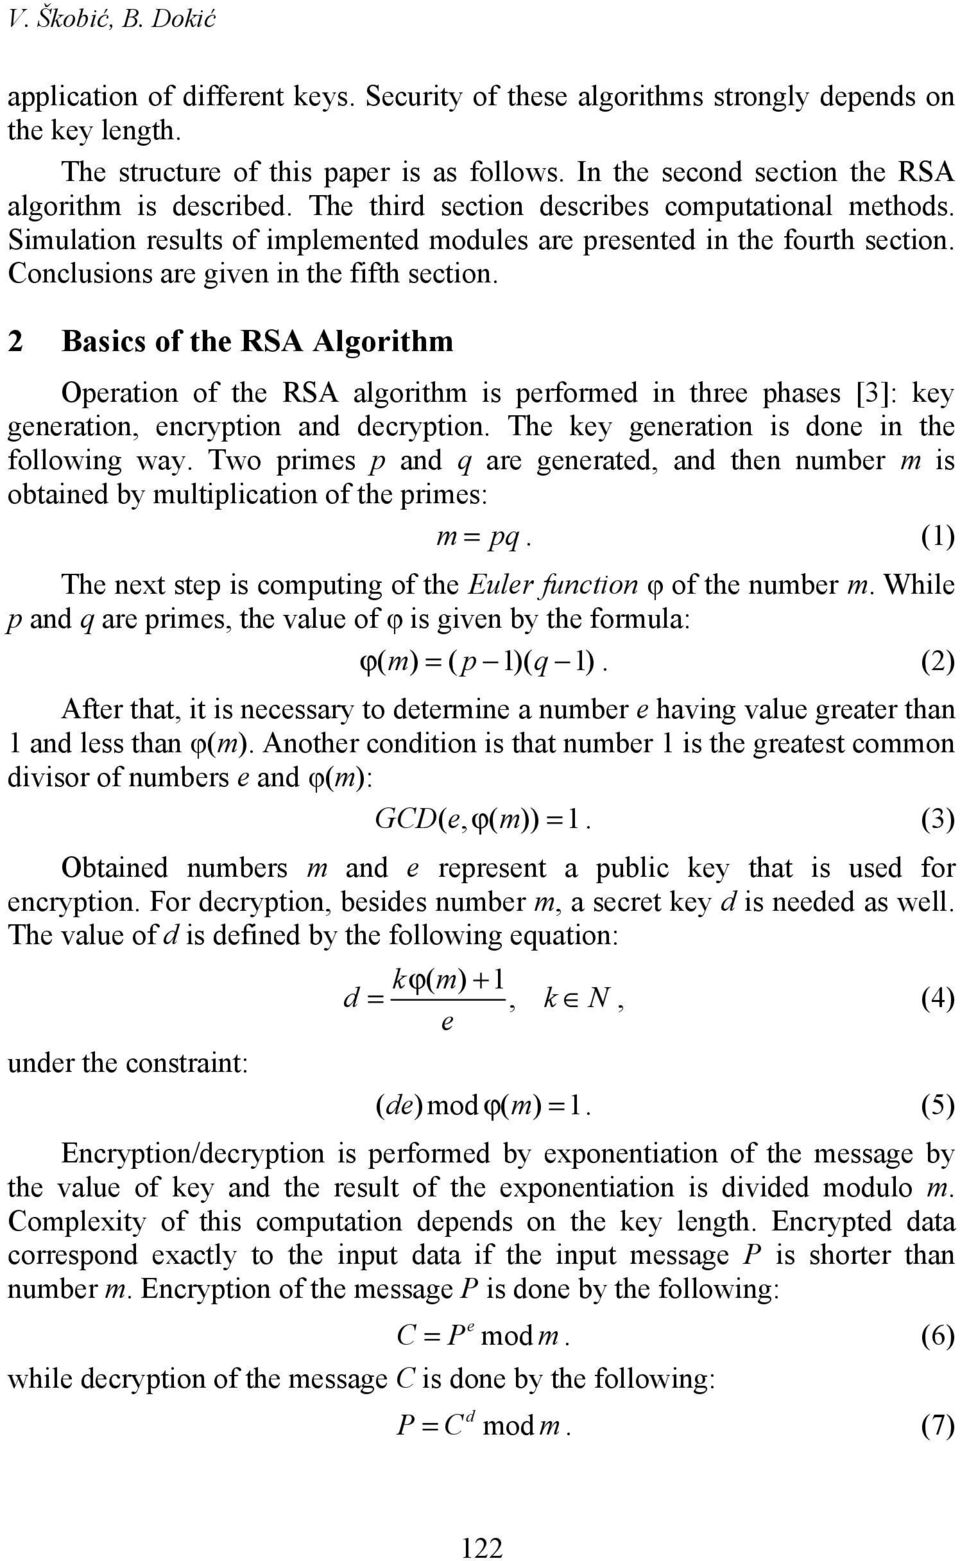 2 Basics of th RSA Algorithm Opration of th RSA algorithm is prformd in thr phass [3]: ky gnration, ncryption and dcryption. Th ky gnration is don in th following way.